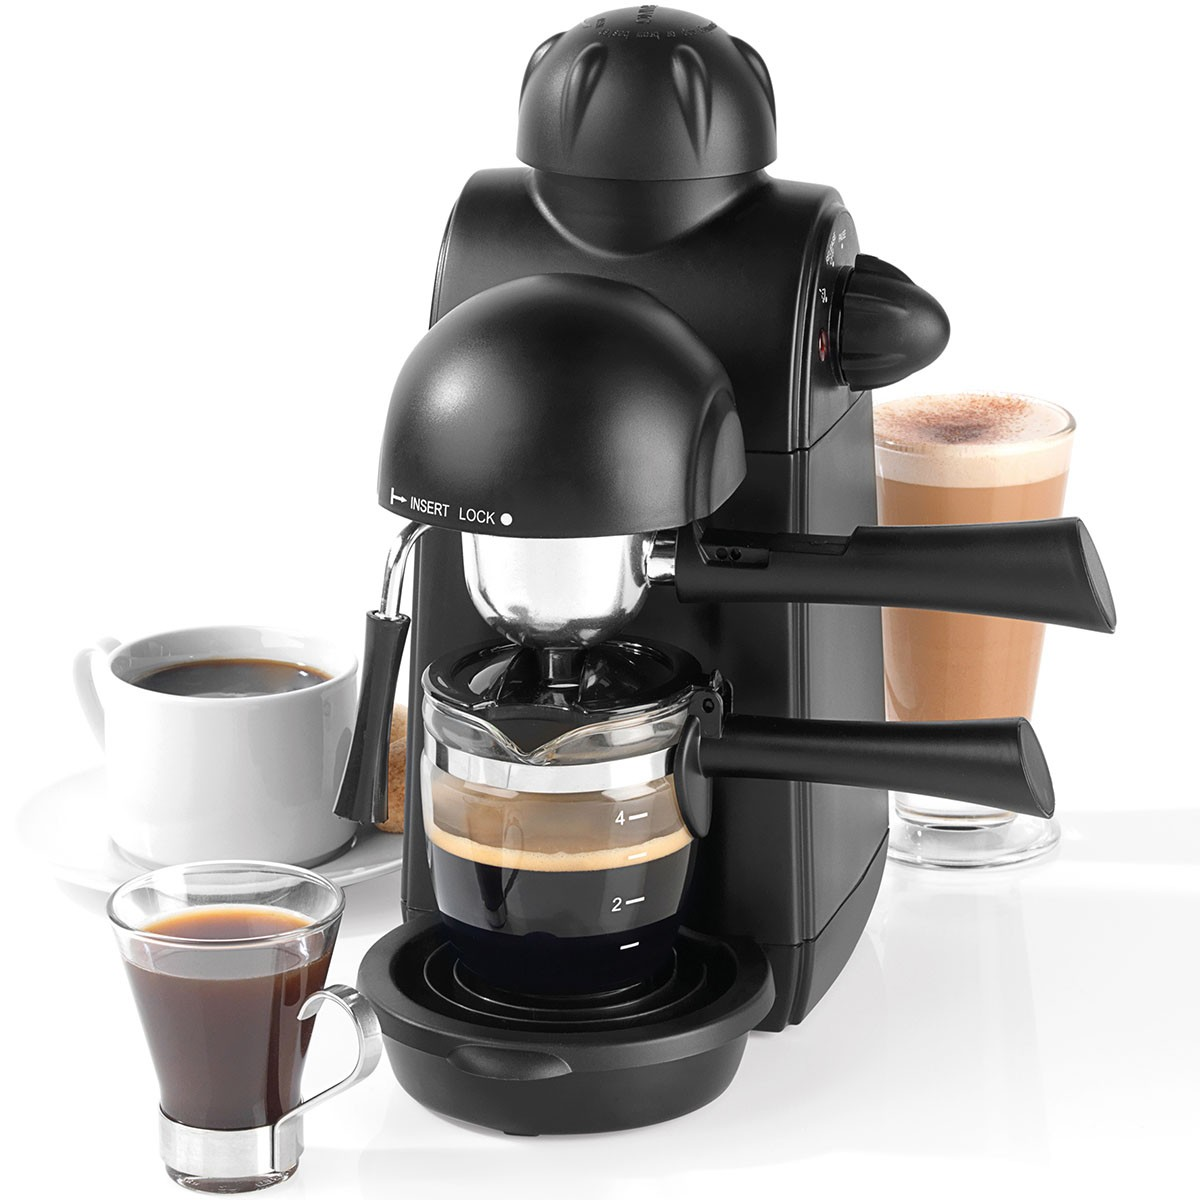 Salter Espressimo Barista Style Coffee Machine at Robert Dyas